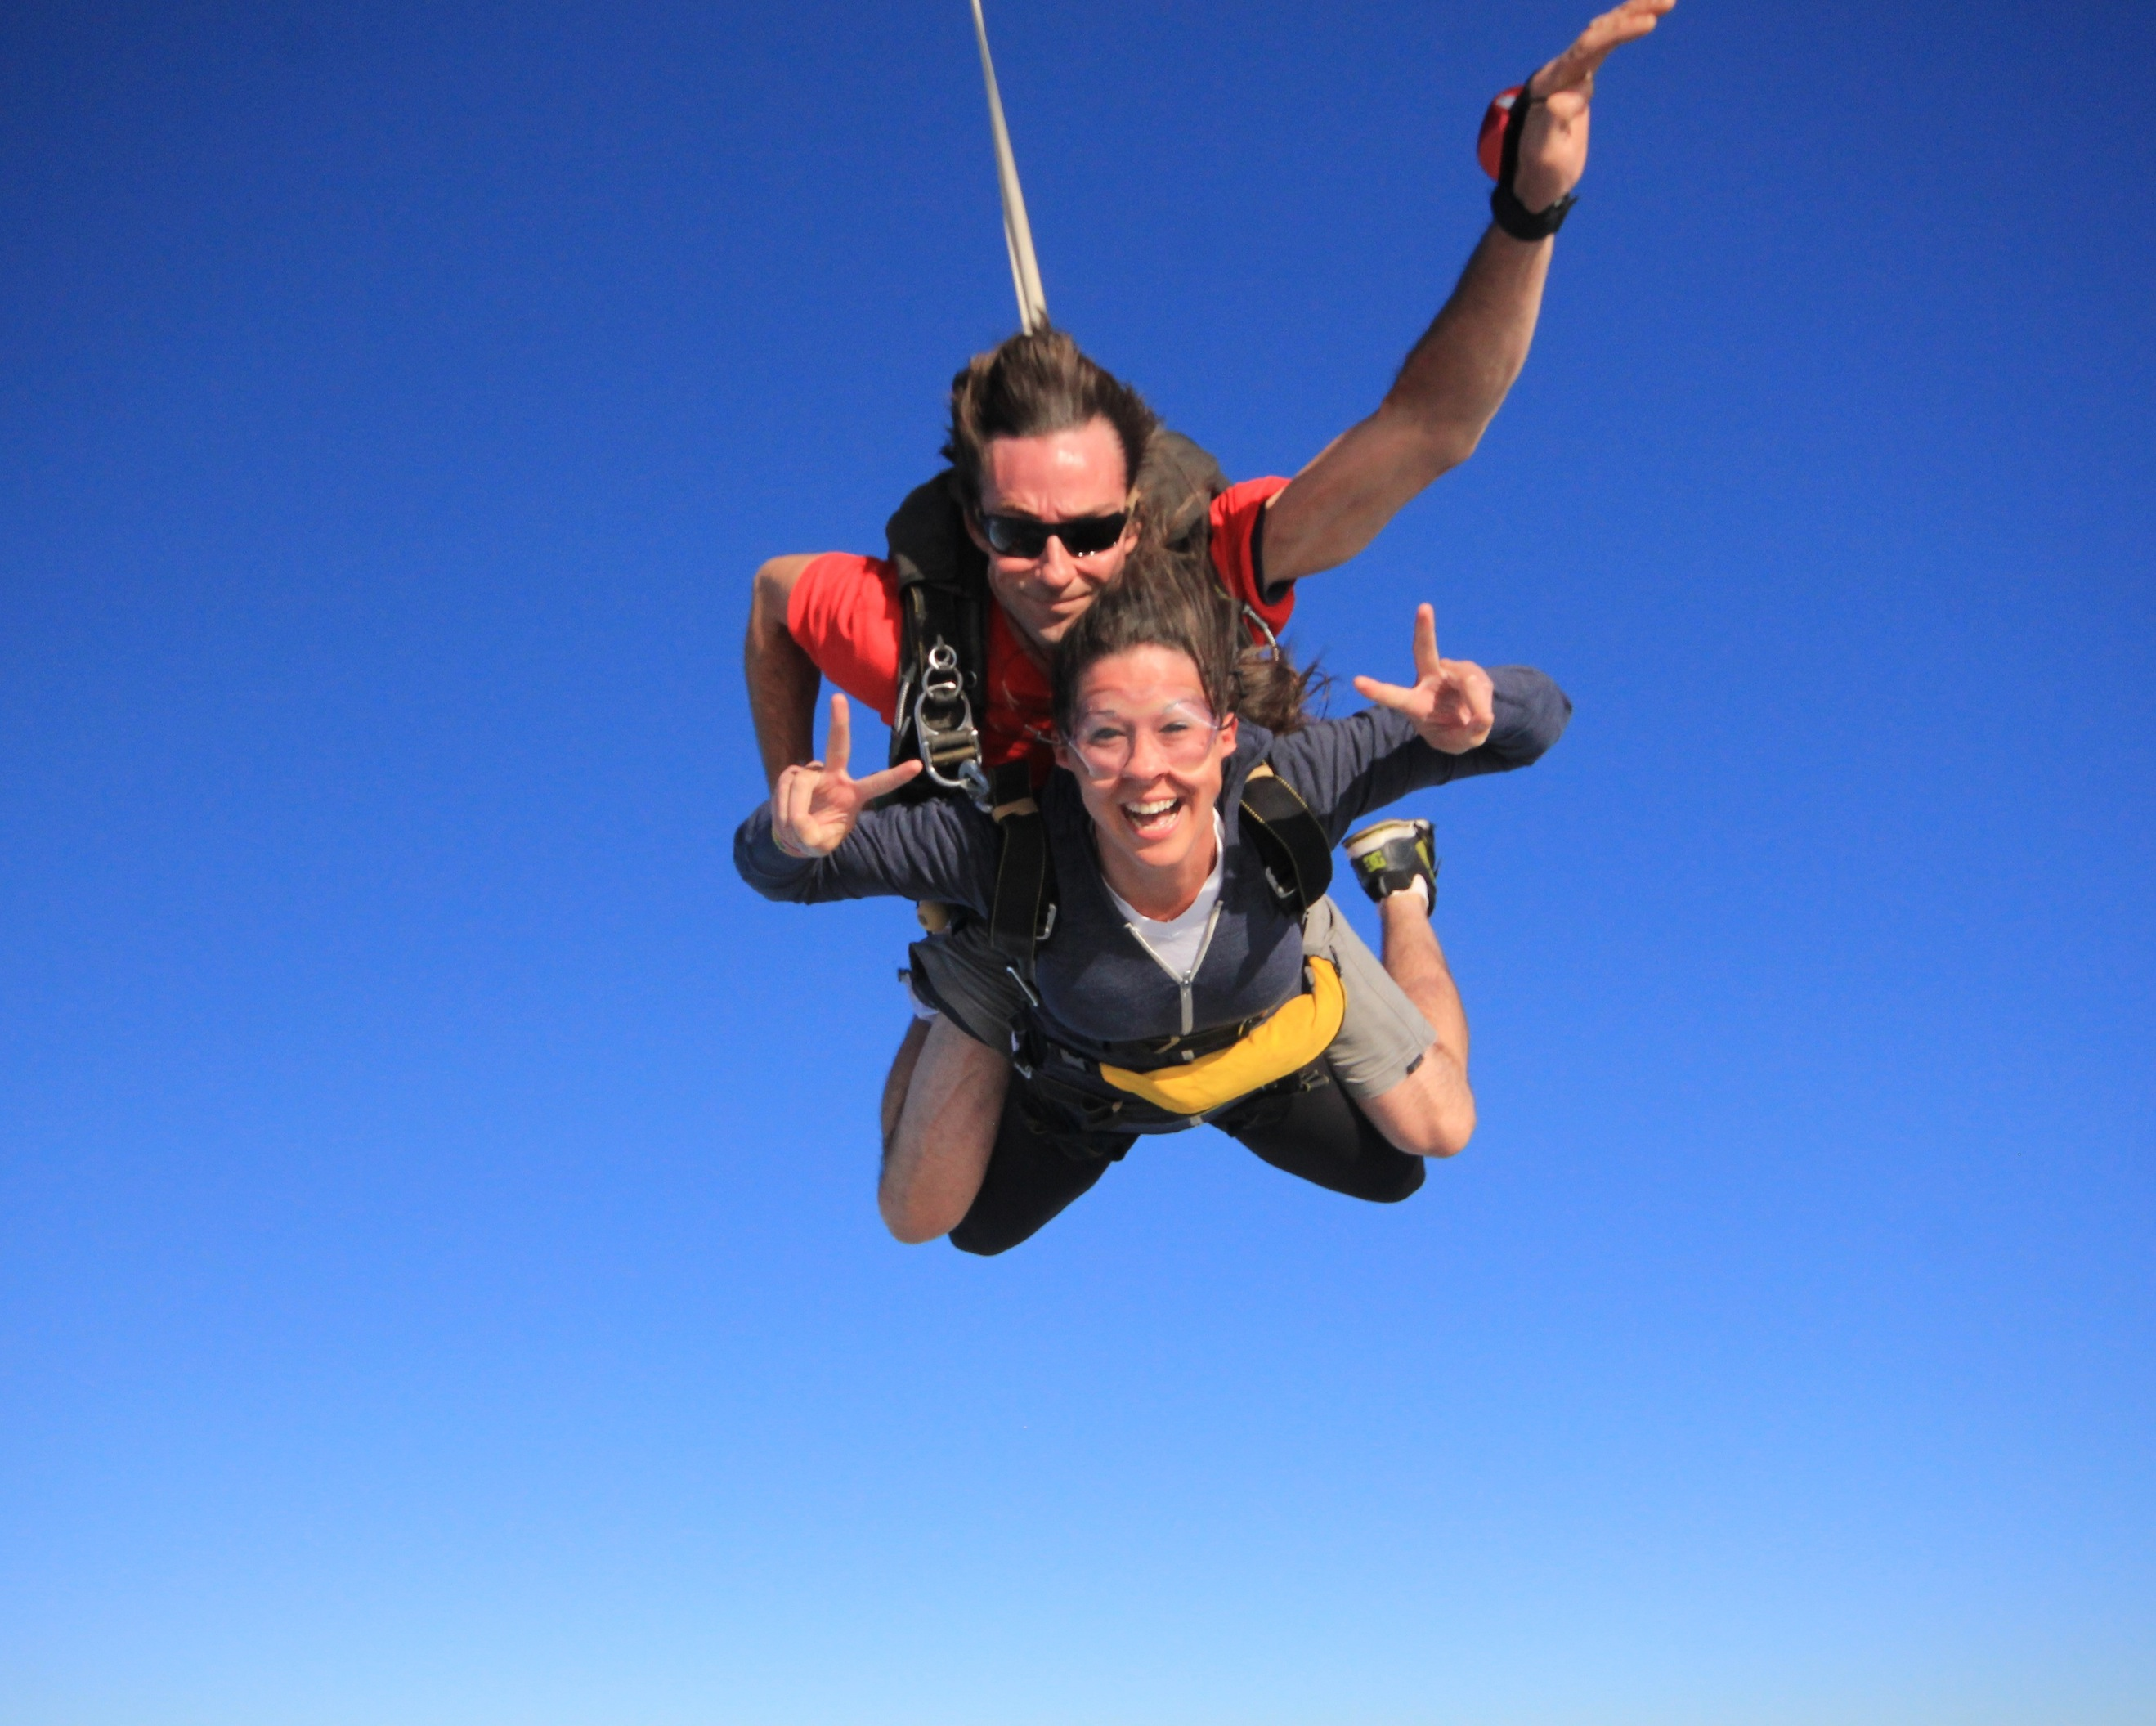 Skydiving…check!